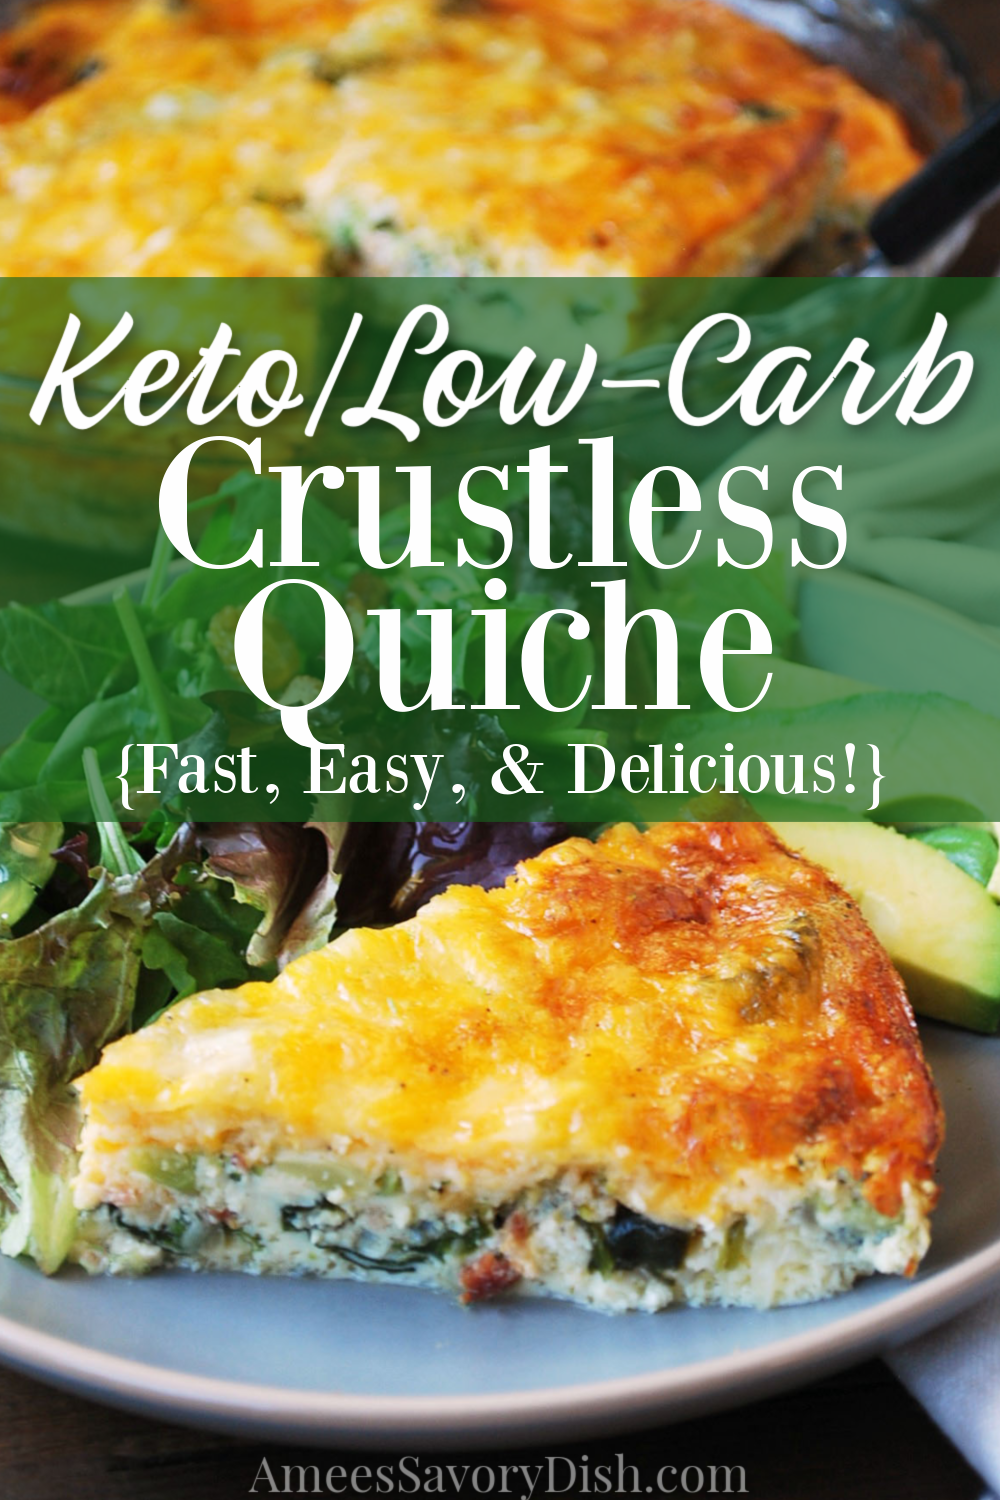 A simple and delicious low-carb crustless quiche recipe made with bacon, broccoli, fresh baby spinach, onions, and cheese.#ketorecipe #ketoquiche #lowcarbquiche #ketobreakfast #ketorecipe #loadedquiche #spinachquiche #crustlessquiche via @Ameessavorydish